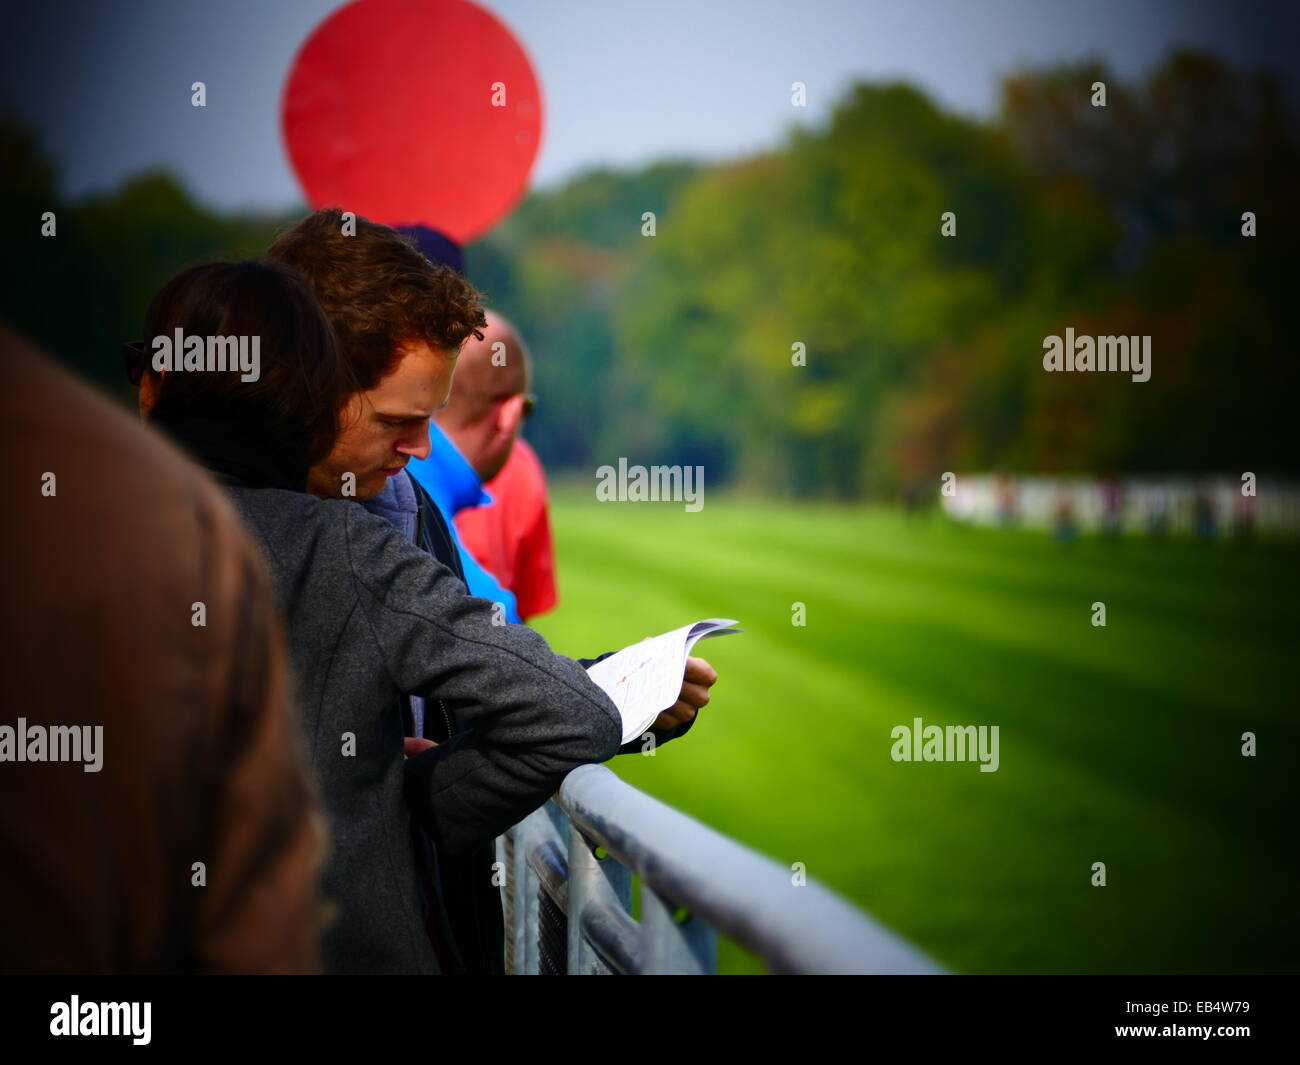 People at Track studying racing program Horse Race Racing - Stock Image